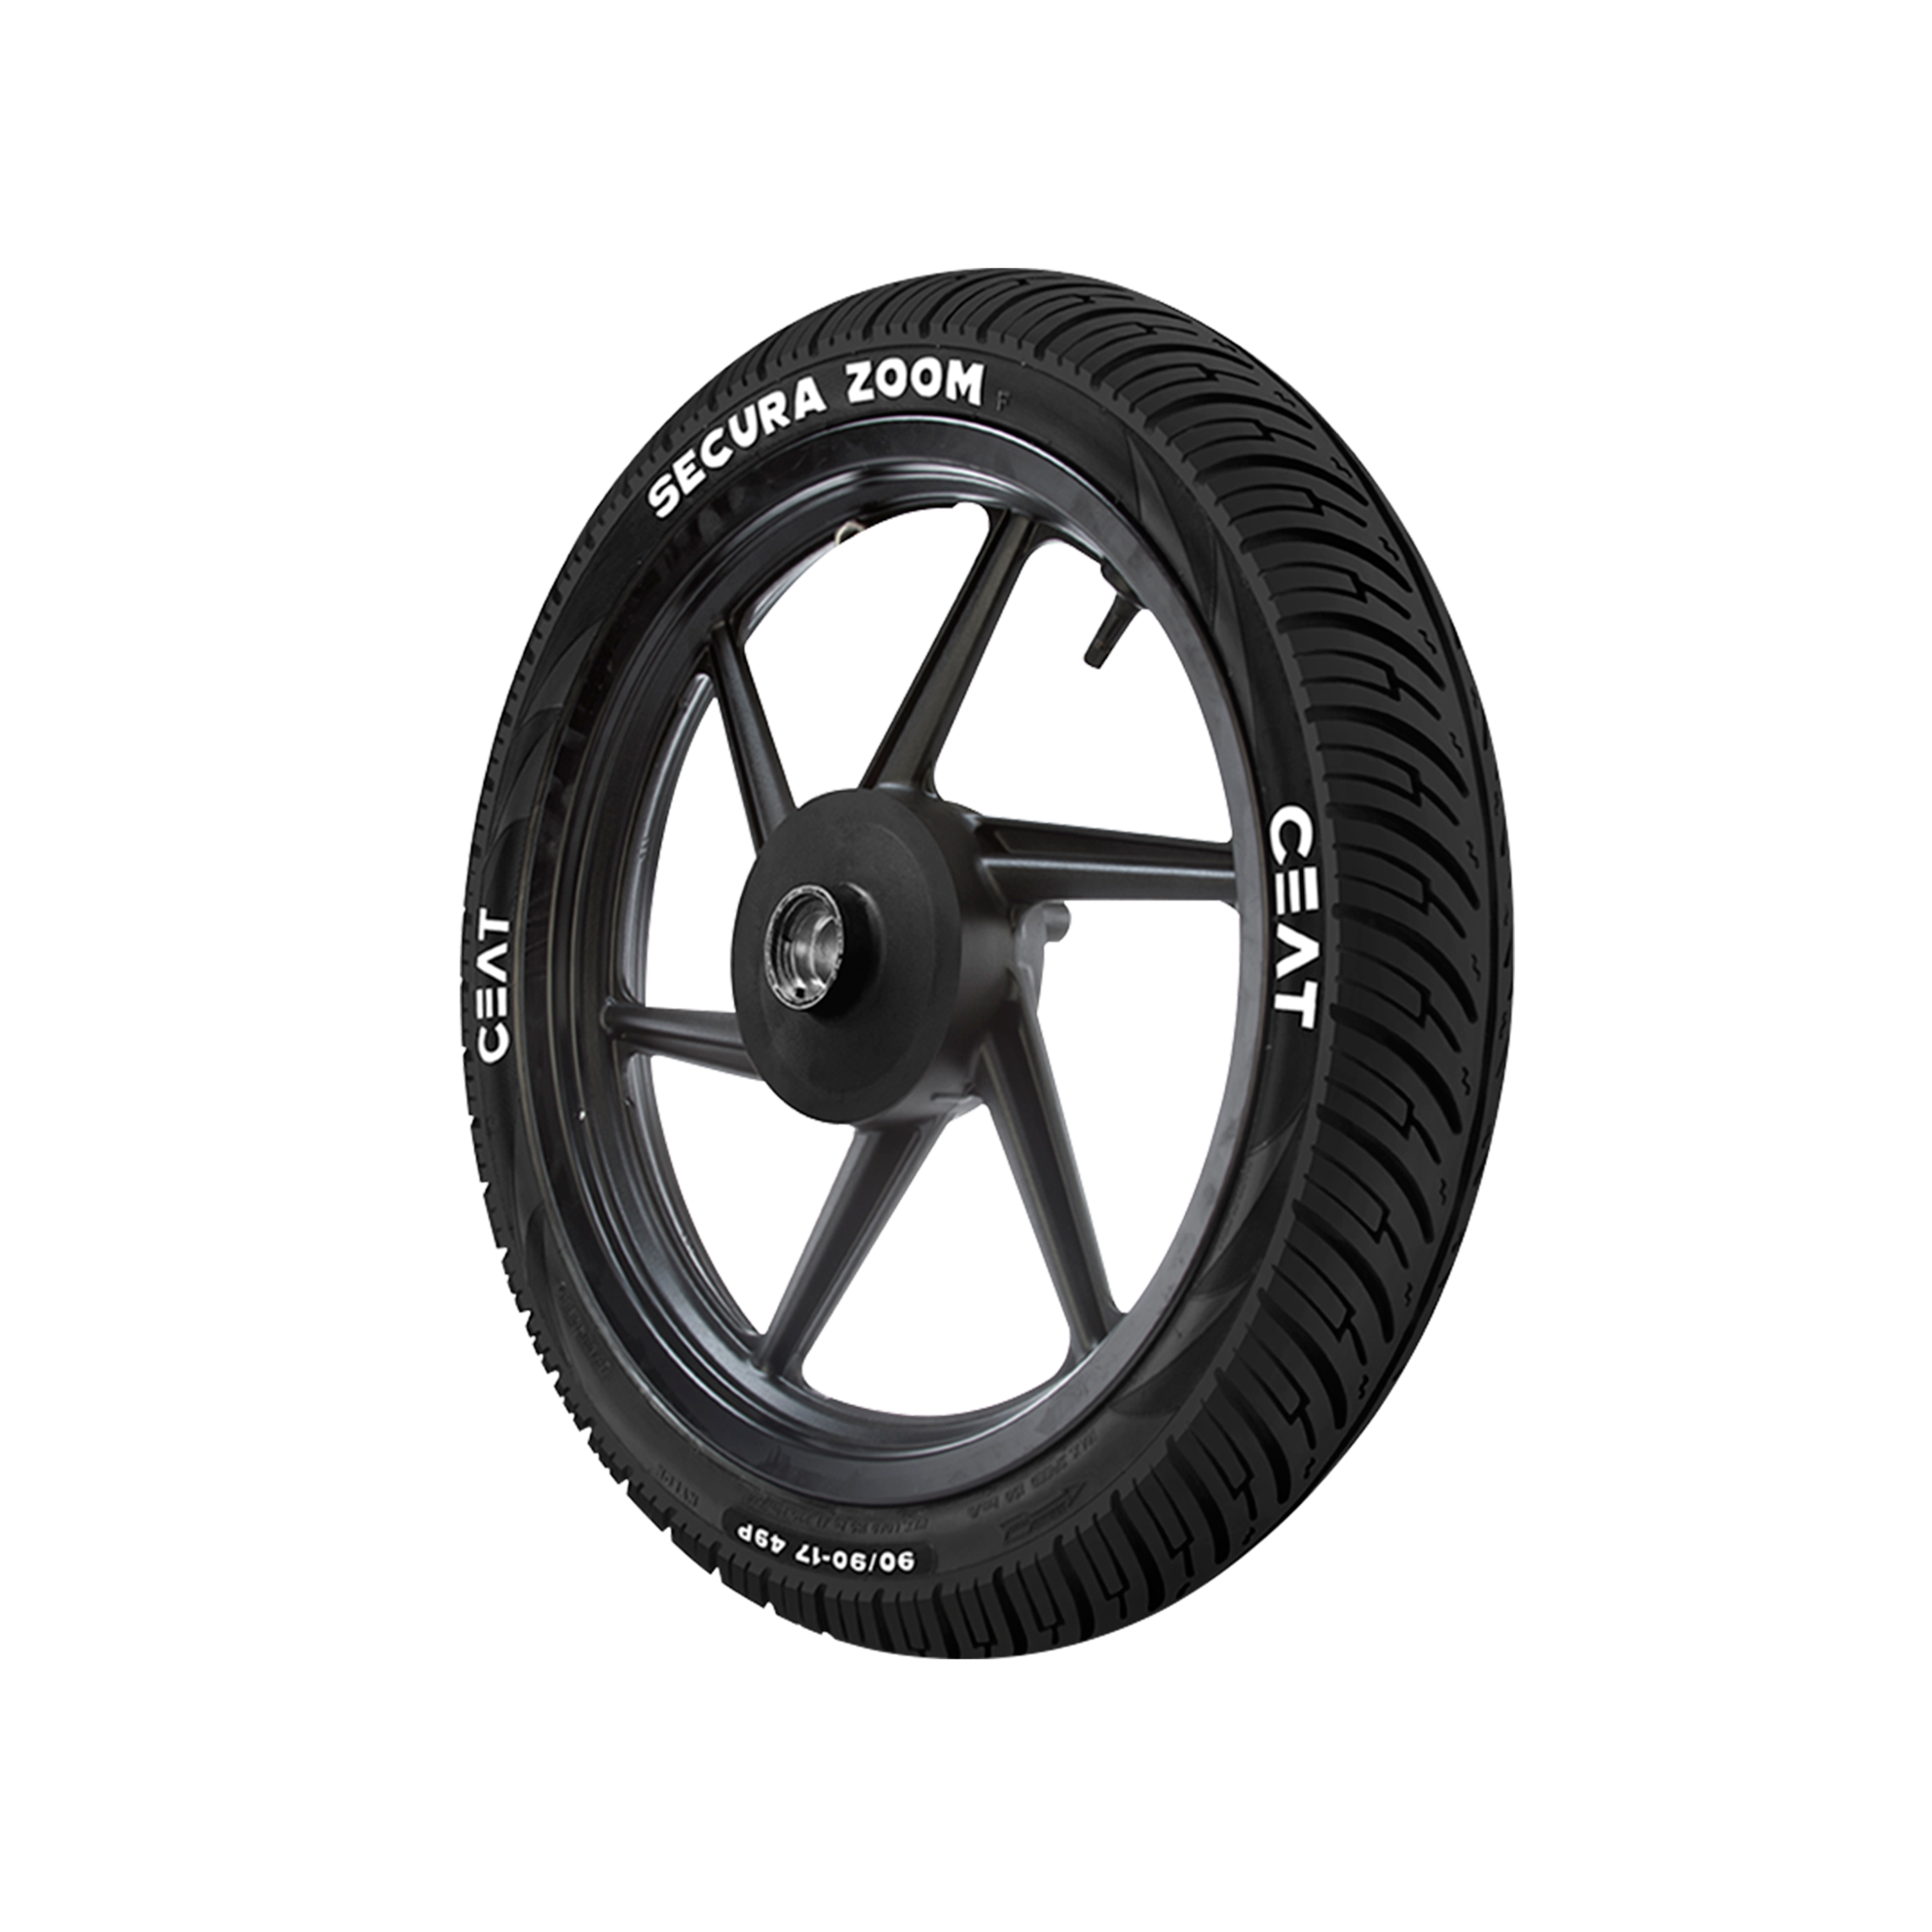 Ceat SECURE ZOOM 2.75 R 17 Front Two-Wheeler Tyre